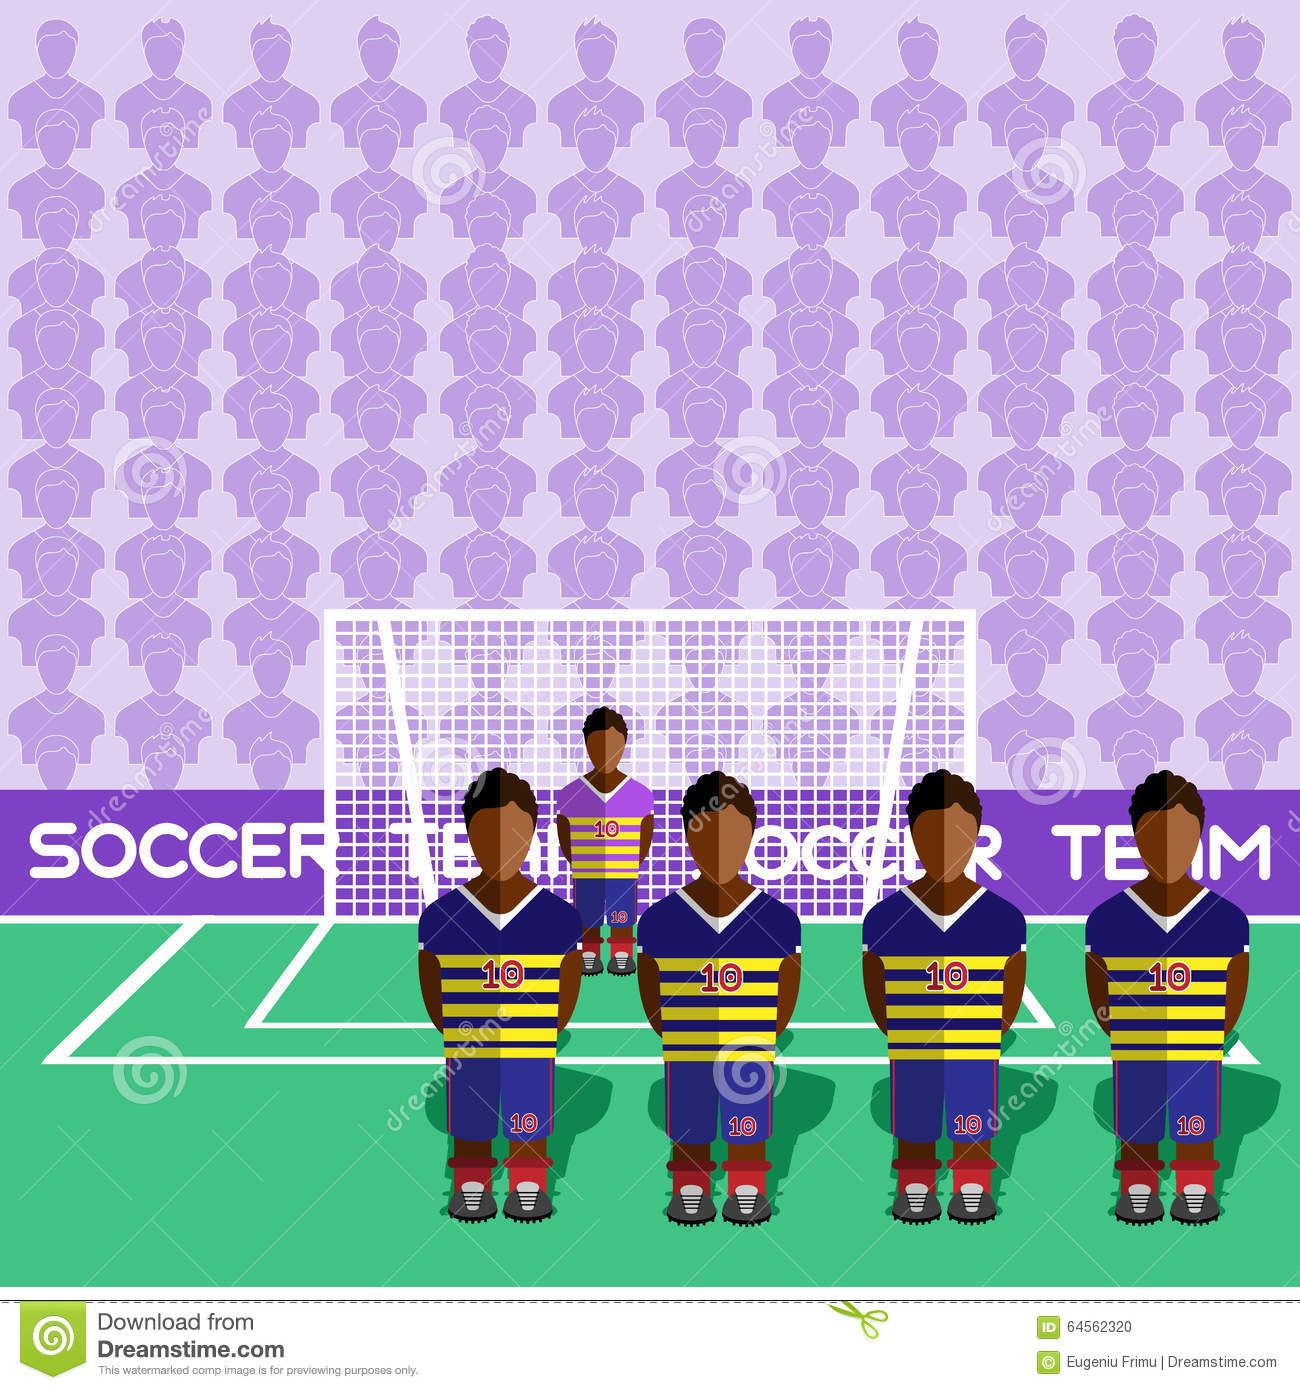 6eedd86060c Ecuador Football Club Soccer Players Silhouettes. Computer game Soccer team  players big set. Sports infographic. Football Teams in Flat Style.